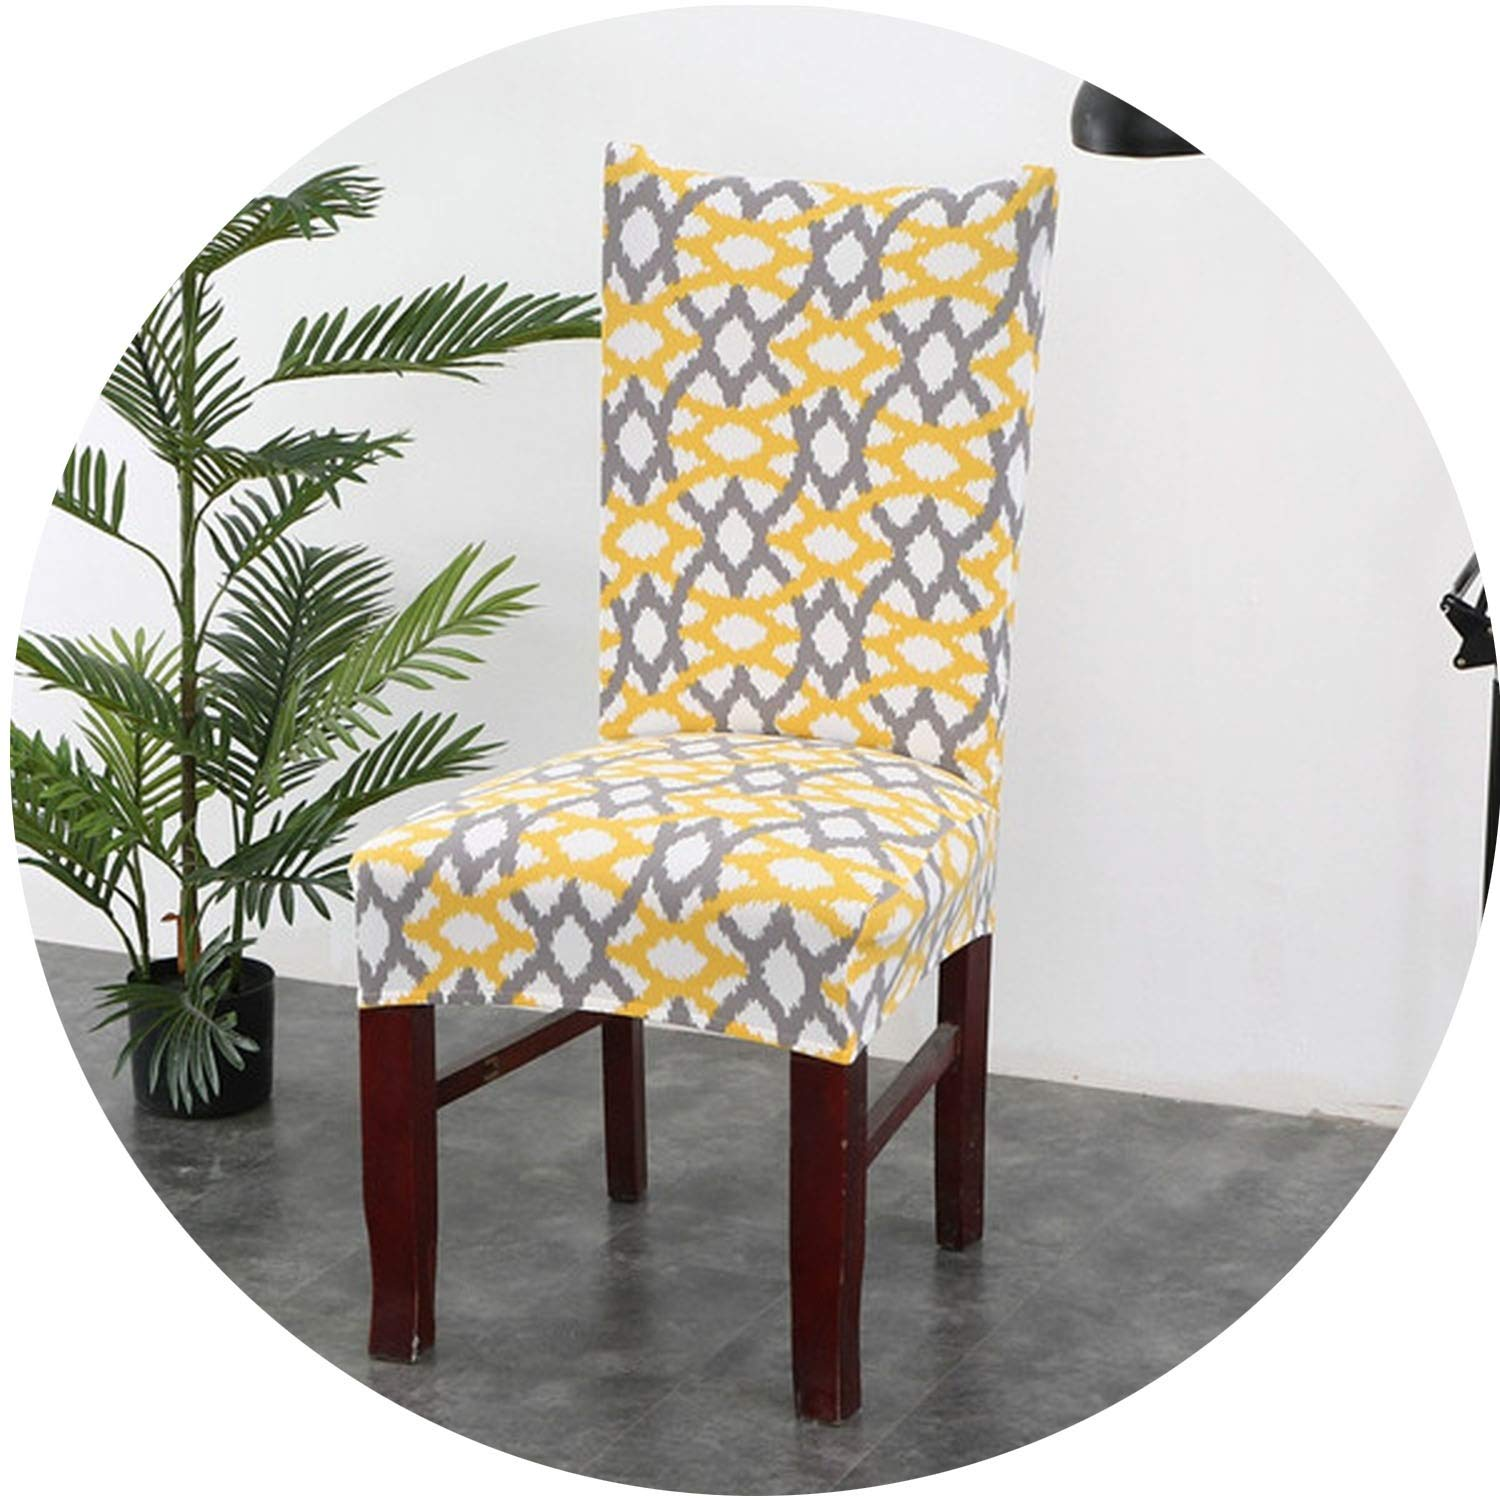 1Pc Spandex Elastic Floral Slipcovers Chair Covers Stretch Removable Dining Chair Cover with Backrest Modern Kitchen Seat Case,16,Universal